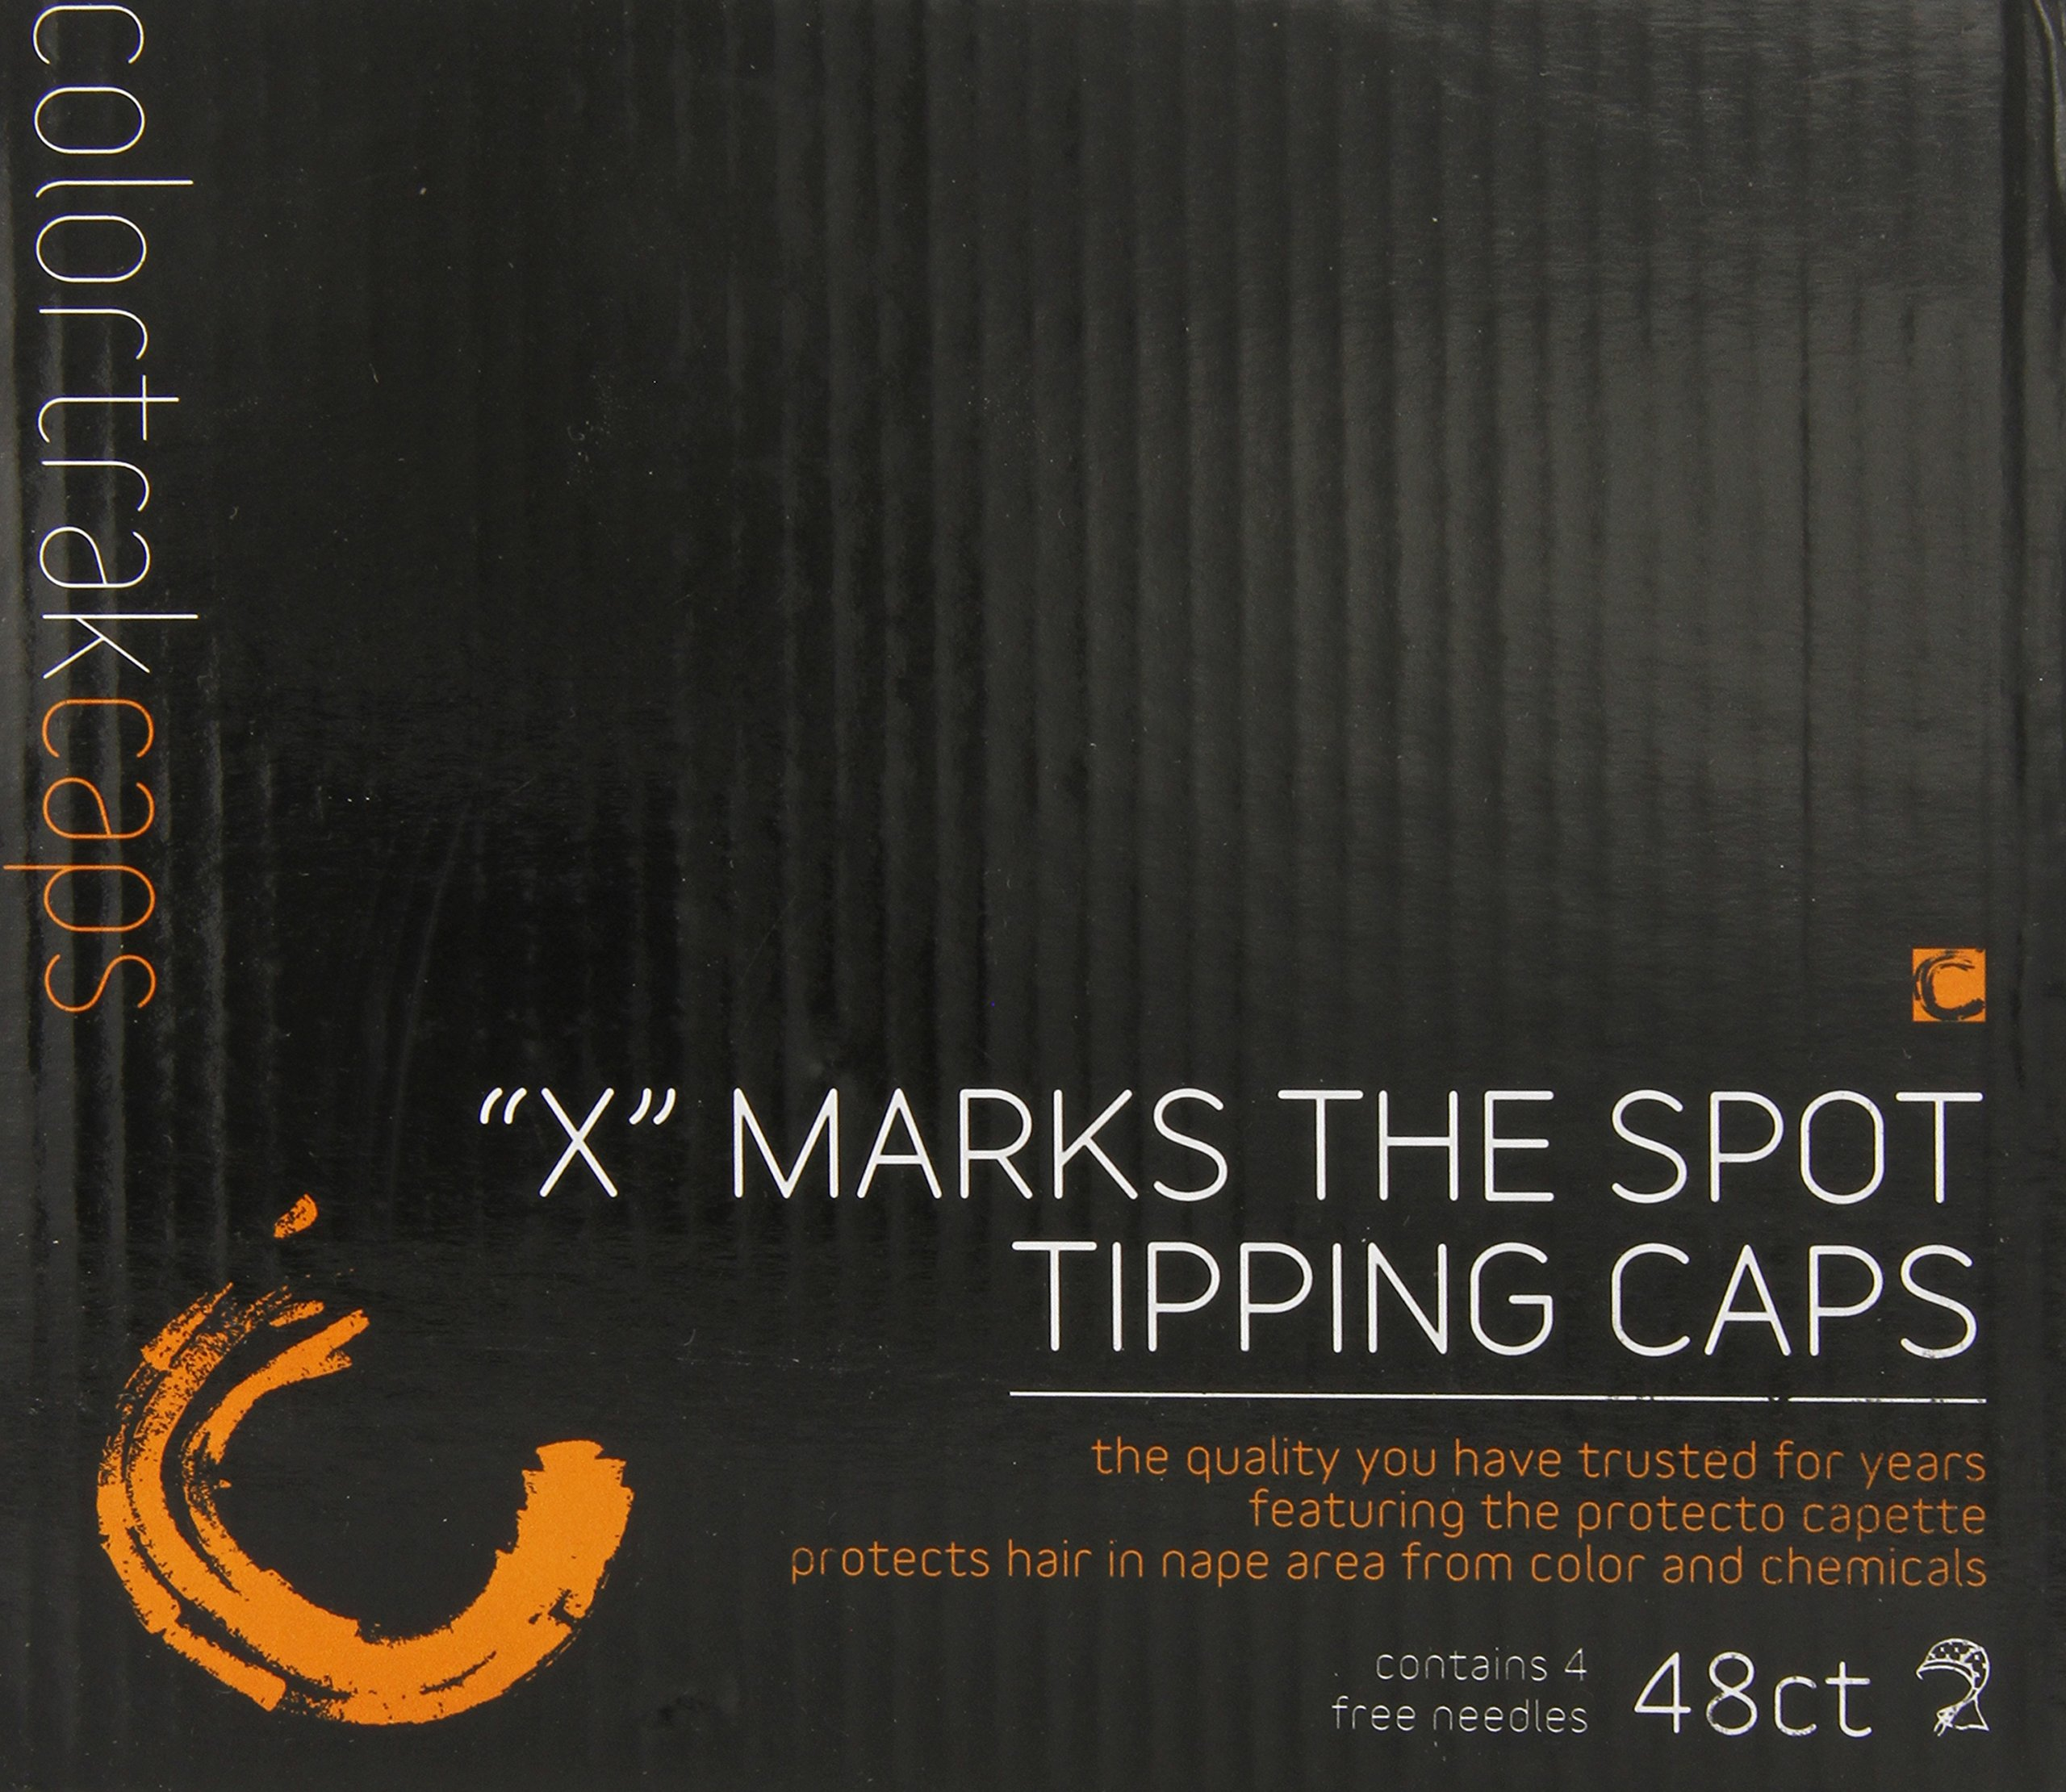 Colortrak X Marks the Spot Disposable Tipping Caps with Neck Protector (48Count + 4 Highlighting Needles) by Colortrak (Image #2)